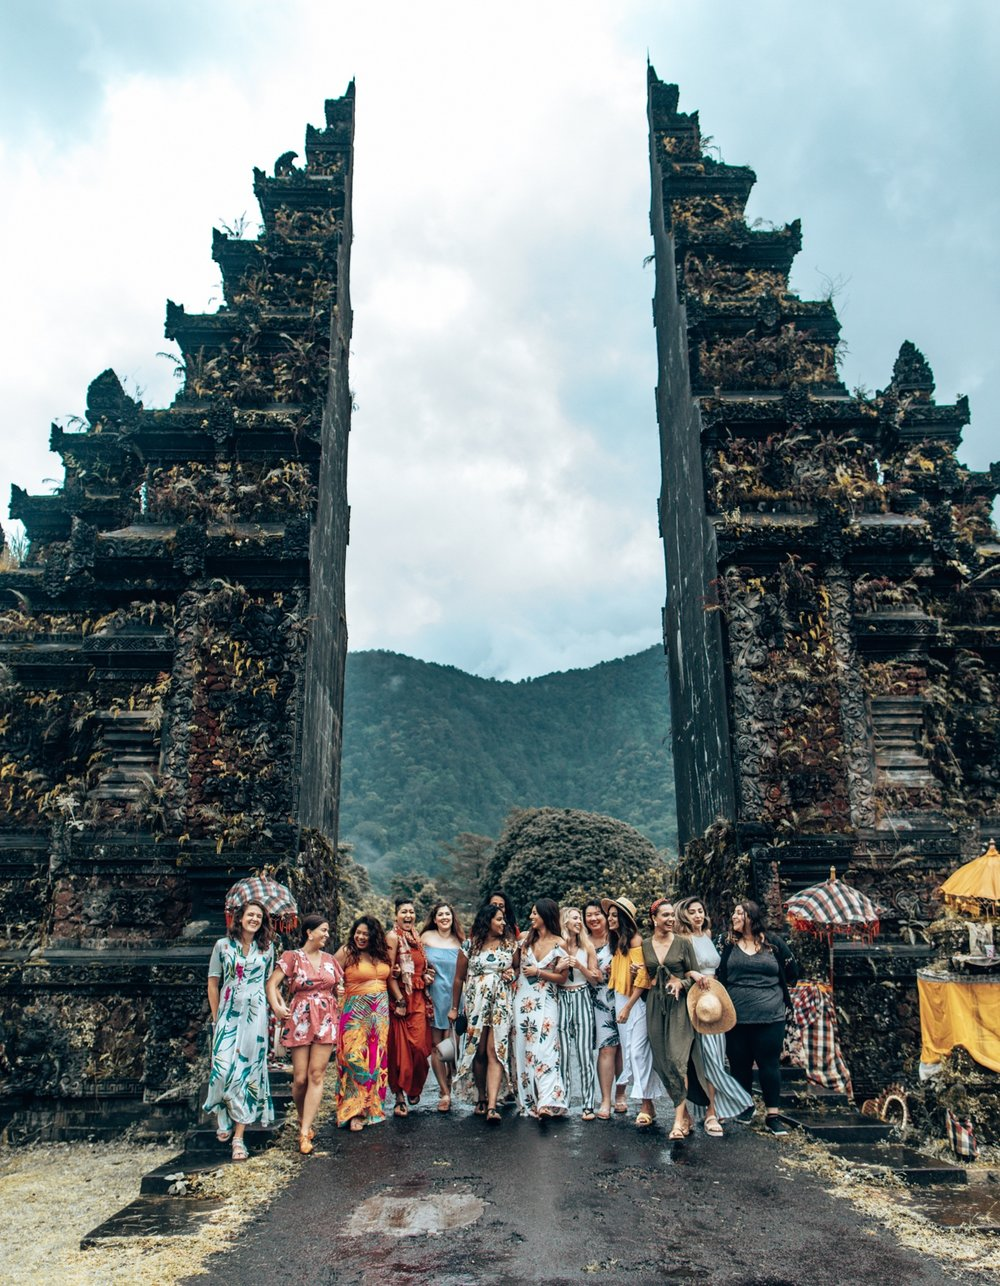 August 12 - August 19, 2019 - 7 Nights / 8 DaysGroup Size: 14*4 spots left*Bali is the ULTIMATE bucket list destination for every girl. Lucky for you we are taking The Girls Trip back to one of the most breathtaking islands in the world. Join us as we explore the Balinese culture and visit some of the most beautiful sights on the island.We're talking about temples, waterfalls, food, and most of all, the people who make this island so beautiful. We will be taking you through an experience you will remember for a lifetime.Here's a little taste of what you can expect:*Boutique Private Villa with Pool, Beautiful Sunsets, and Picture Perfect Backdrops**An Experience Packed Itinerary Customized with Curated Experiences**Local and Specialty Dining Experiences*